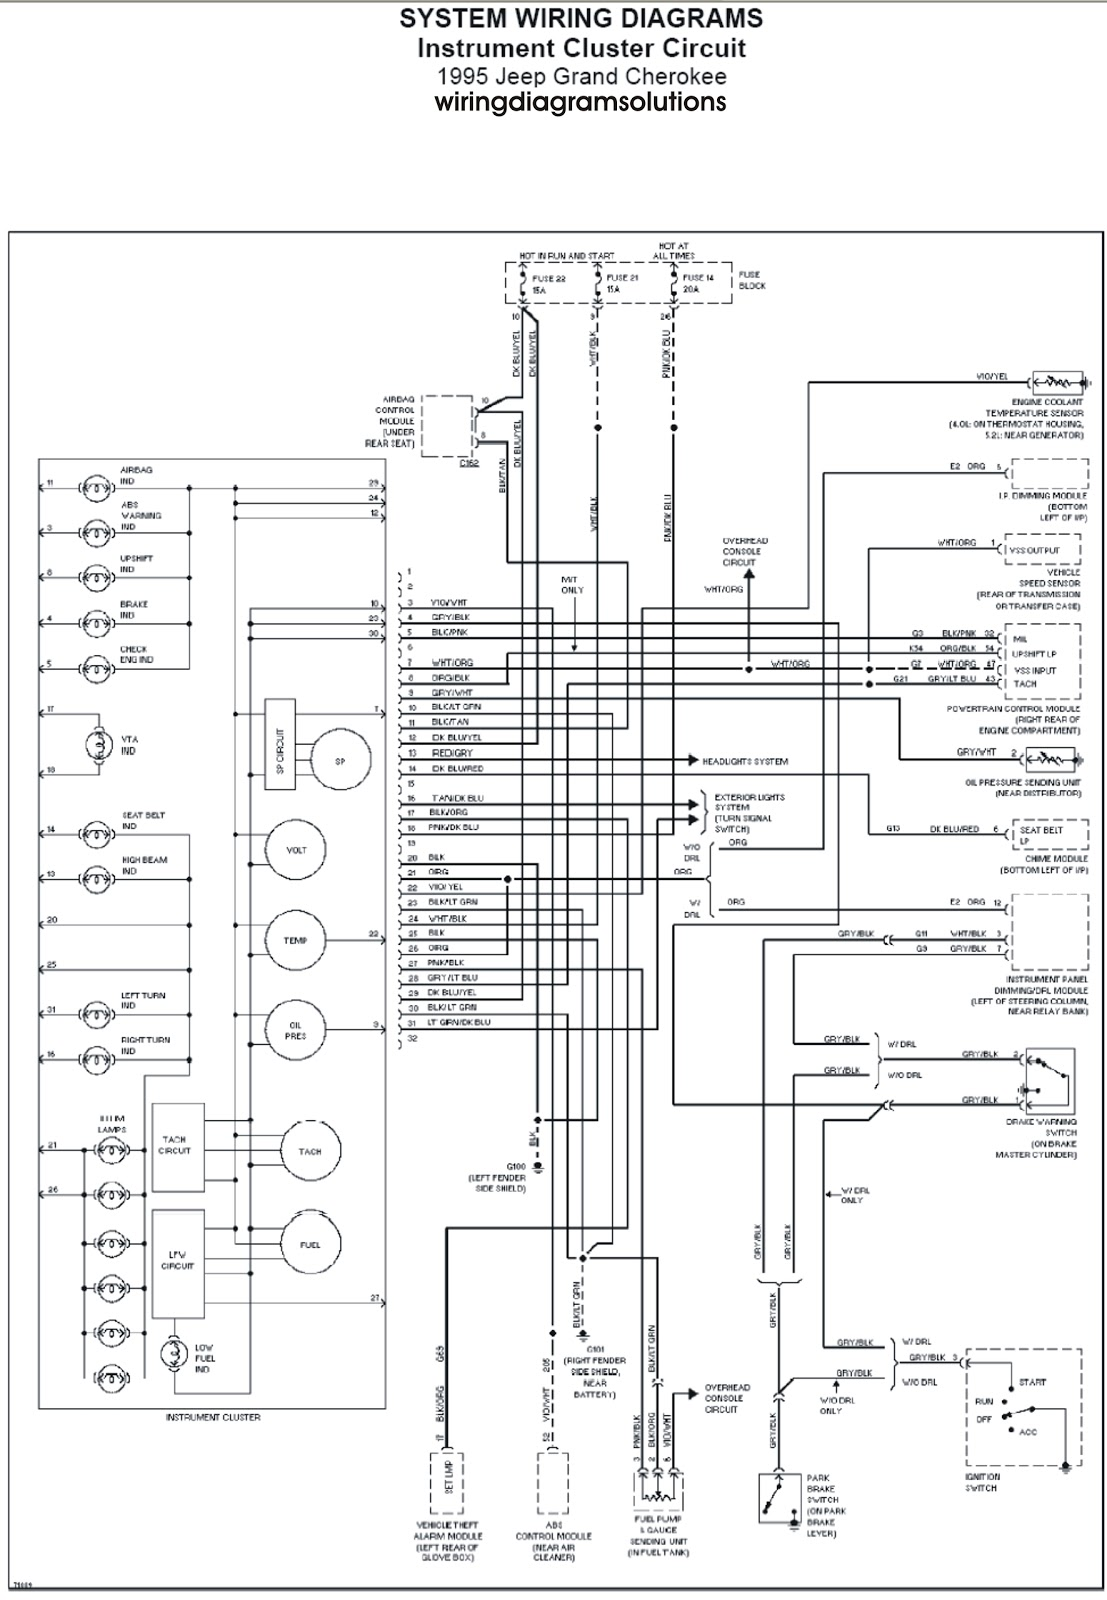 1999 jeep wrangler radio wiring harness diagram html with 665771 1995 Jeep Grand Cherokee Laredo Radio Wiring Diagram on 665771 1995 Jeep Grand Cherokee Laredo Radio Wiring Diagram likewise Wiring Diagram For 1999 Plymouth Voyager also 1999 Ford Mustang Fuel Pump Wiring Diagram further 2000 Jeep Cherokee Grand Under Hood Fuse Box Diagram moreover 5yl2x Looking 1996 Jeep Sports Cheroke 1 Auto Shutdown.